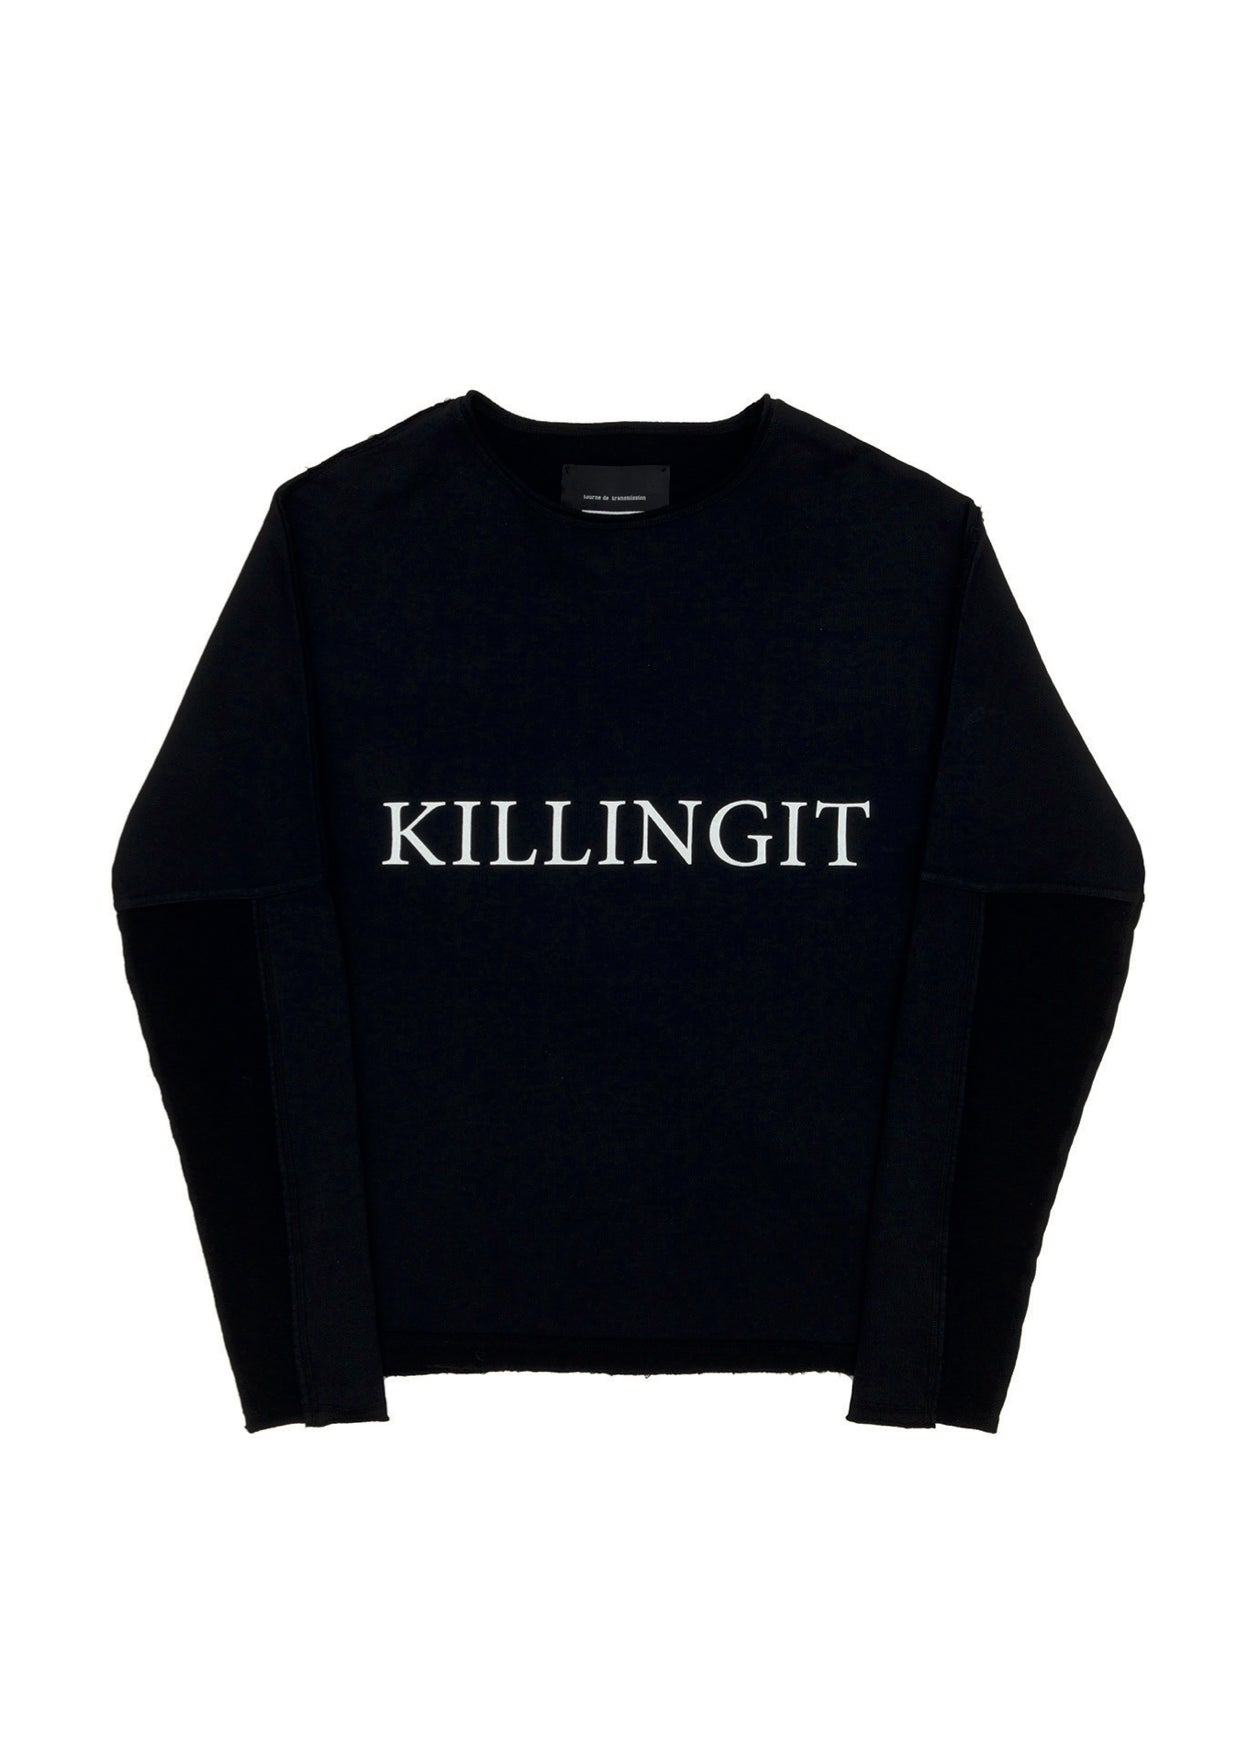 SS16 'KILLING IT' sweat - black